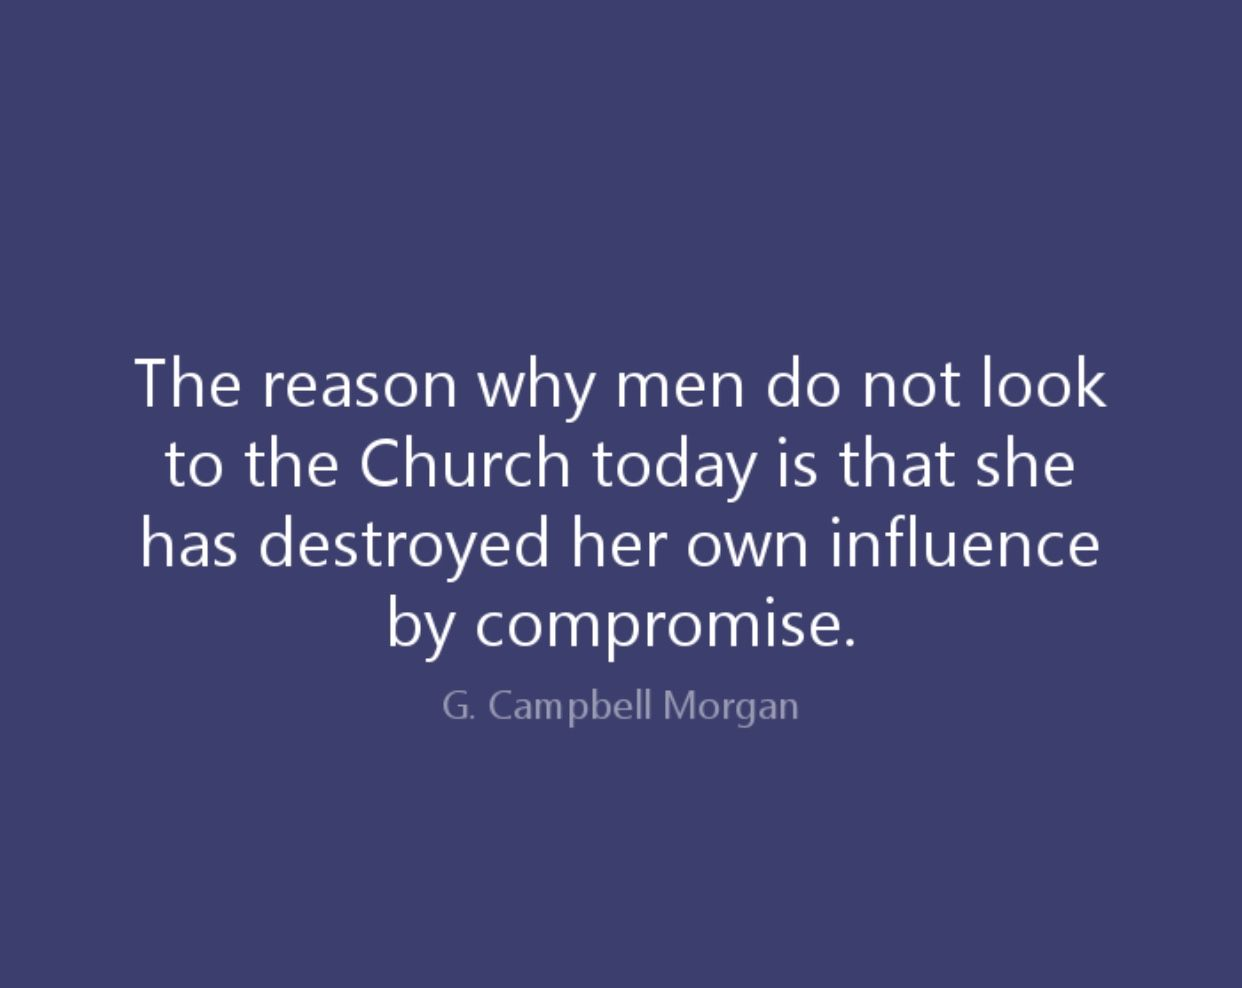 Great quote by g campbell morgan the reason why men do not look to the church today is that she has destroyed her own influence by compromise